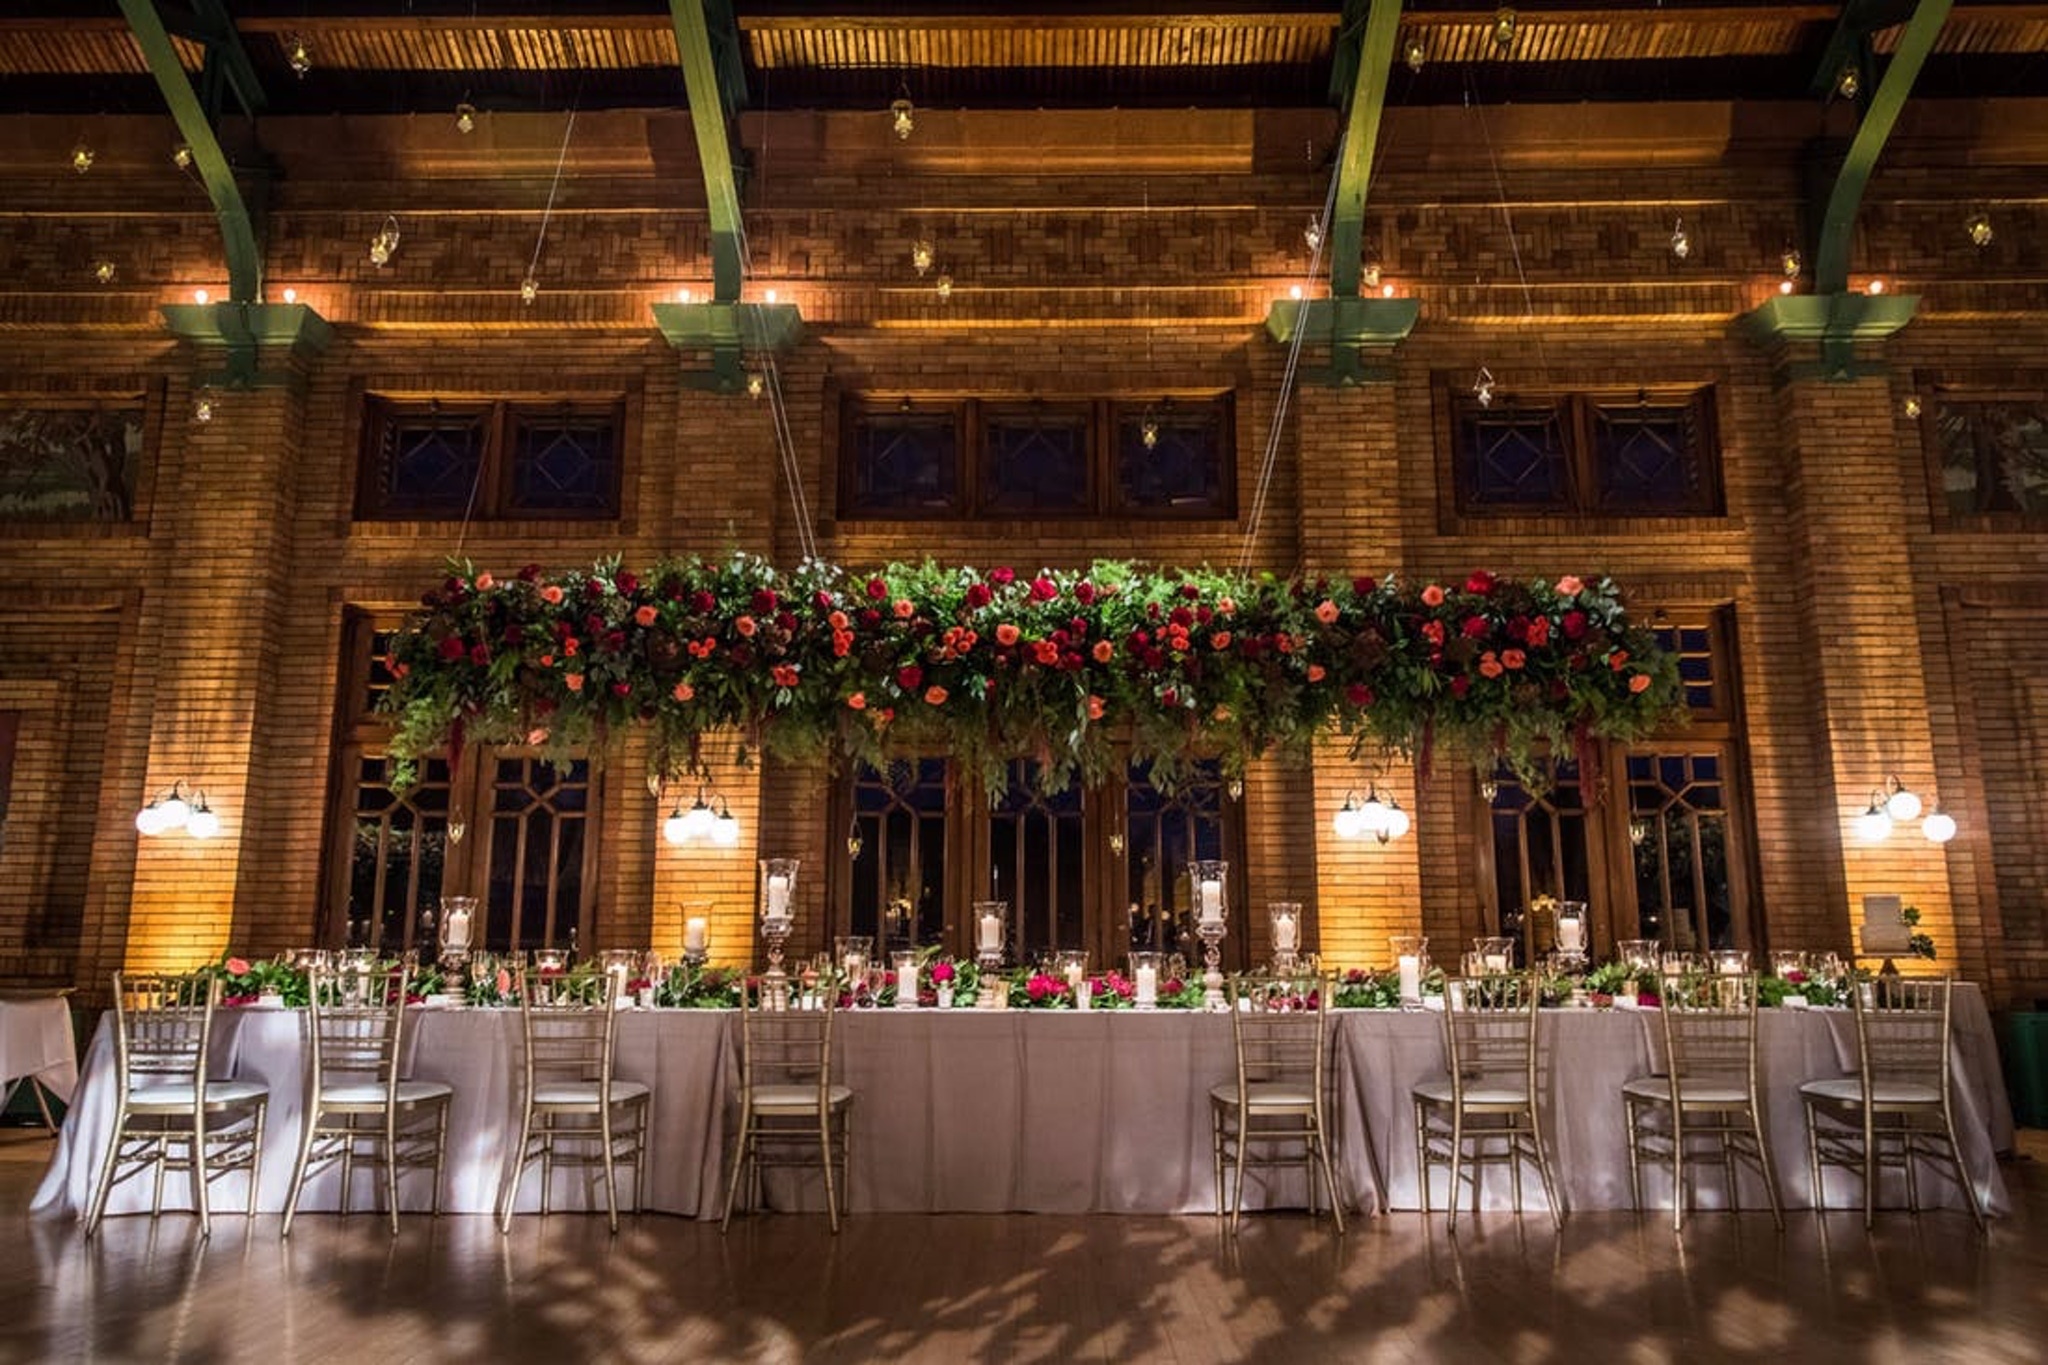 fall wedding reception in Lincoln Park, Chicago at Cafe Brauer with fall décor, greenery and red flowers